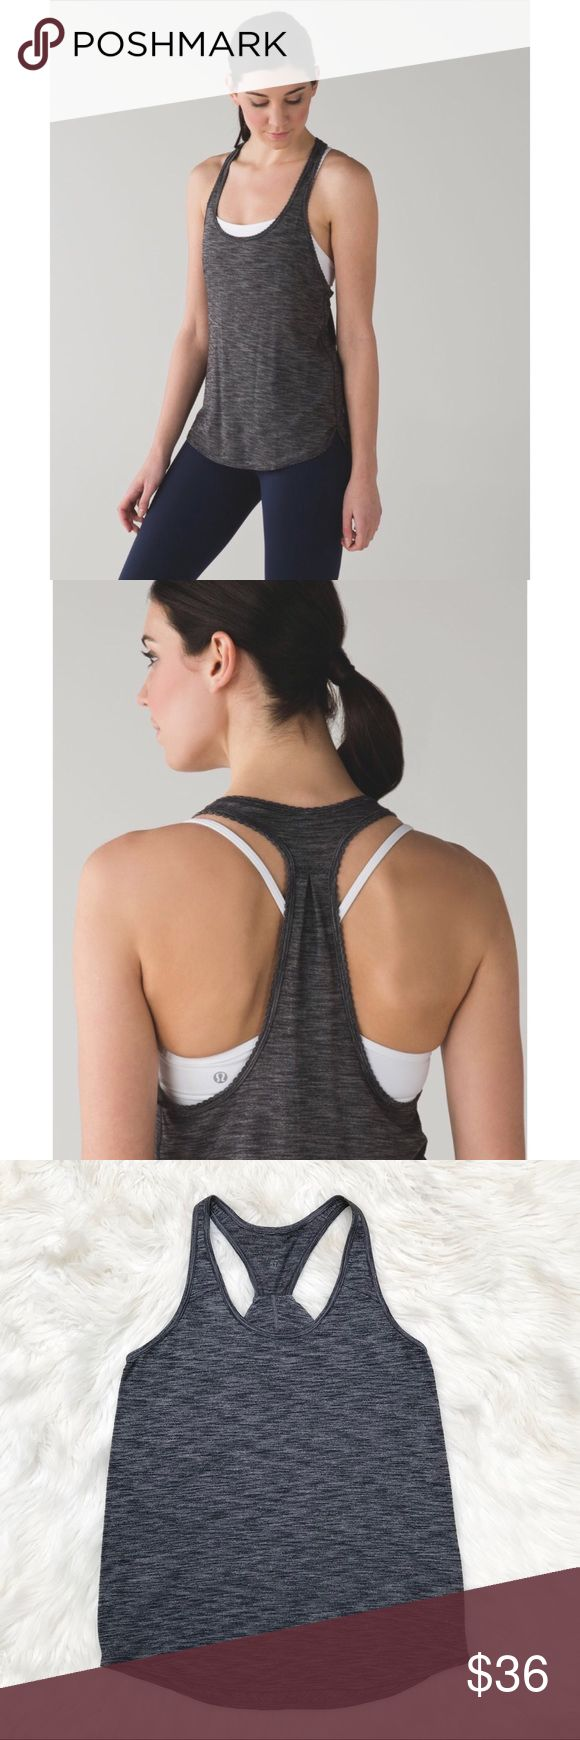 """Lululemon 105F Singlet Tank  Seriously Light Luon We designed this lightweight and loose-fitting tank to layer easily over any bra. The breathable, anti-stink fabric helps to keep us cool in even the hottest of Hot yoga classes so we can go ahead and get sweaty.  No shelf bra Fit is loose Longer in the back for coverage   No size tag so please see measurements below carefully before purchasing:  25.5"""" long 15.5 pit to pit (Online research shows this should measure about a lulu size 8 or…"""